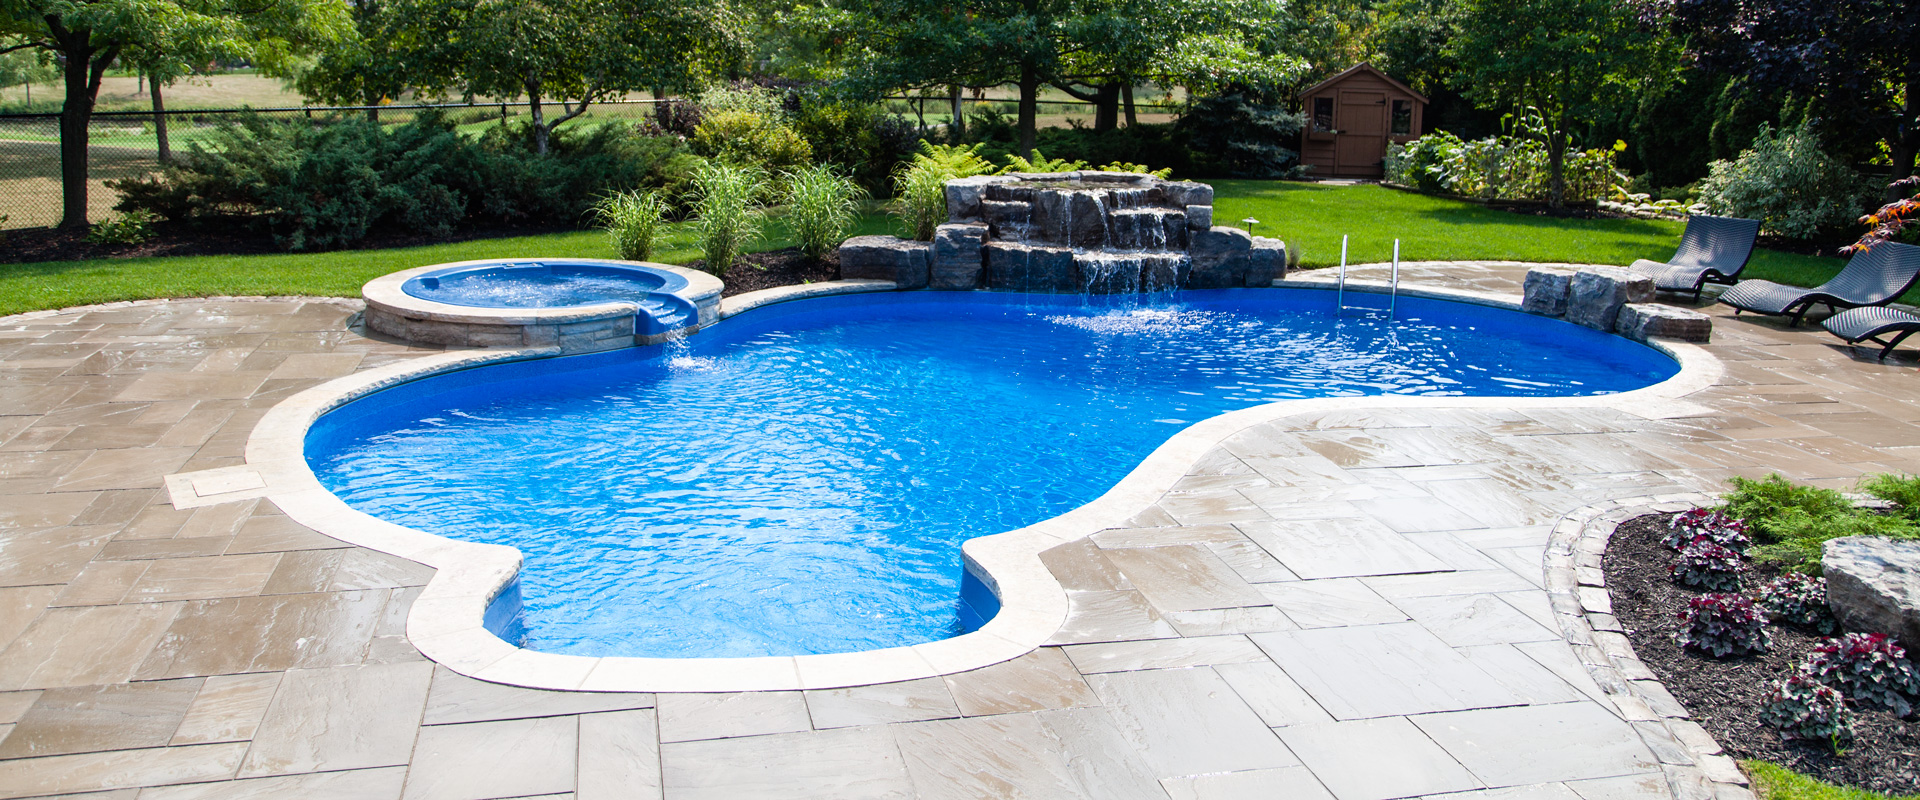 Swimming Pool Filter Pump Price How To Convert Your Pool To Salt Water Pioneer Family Pools